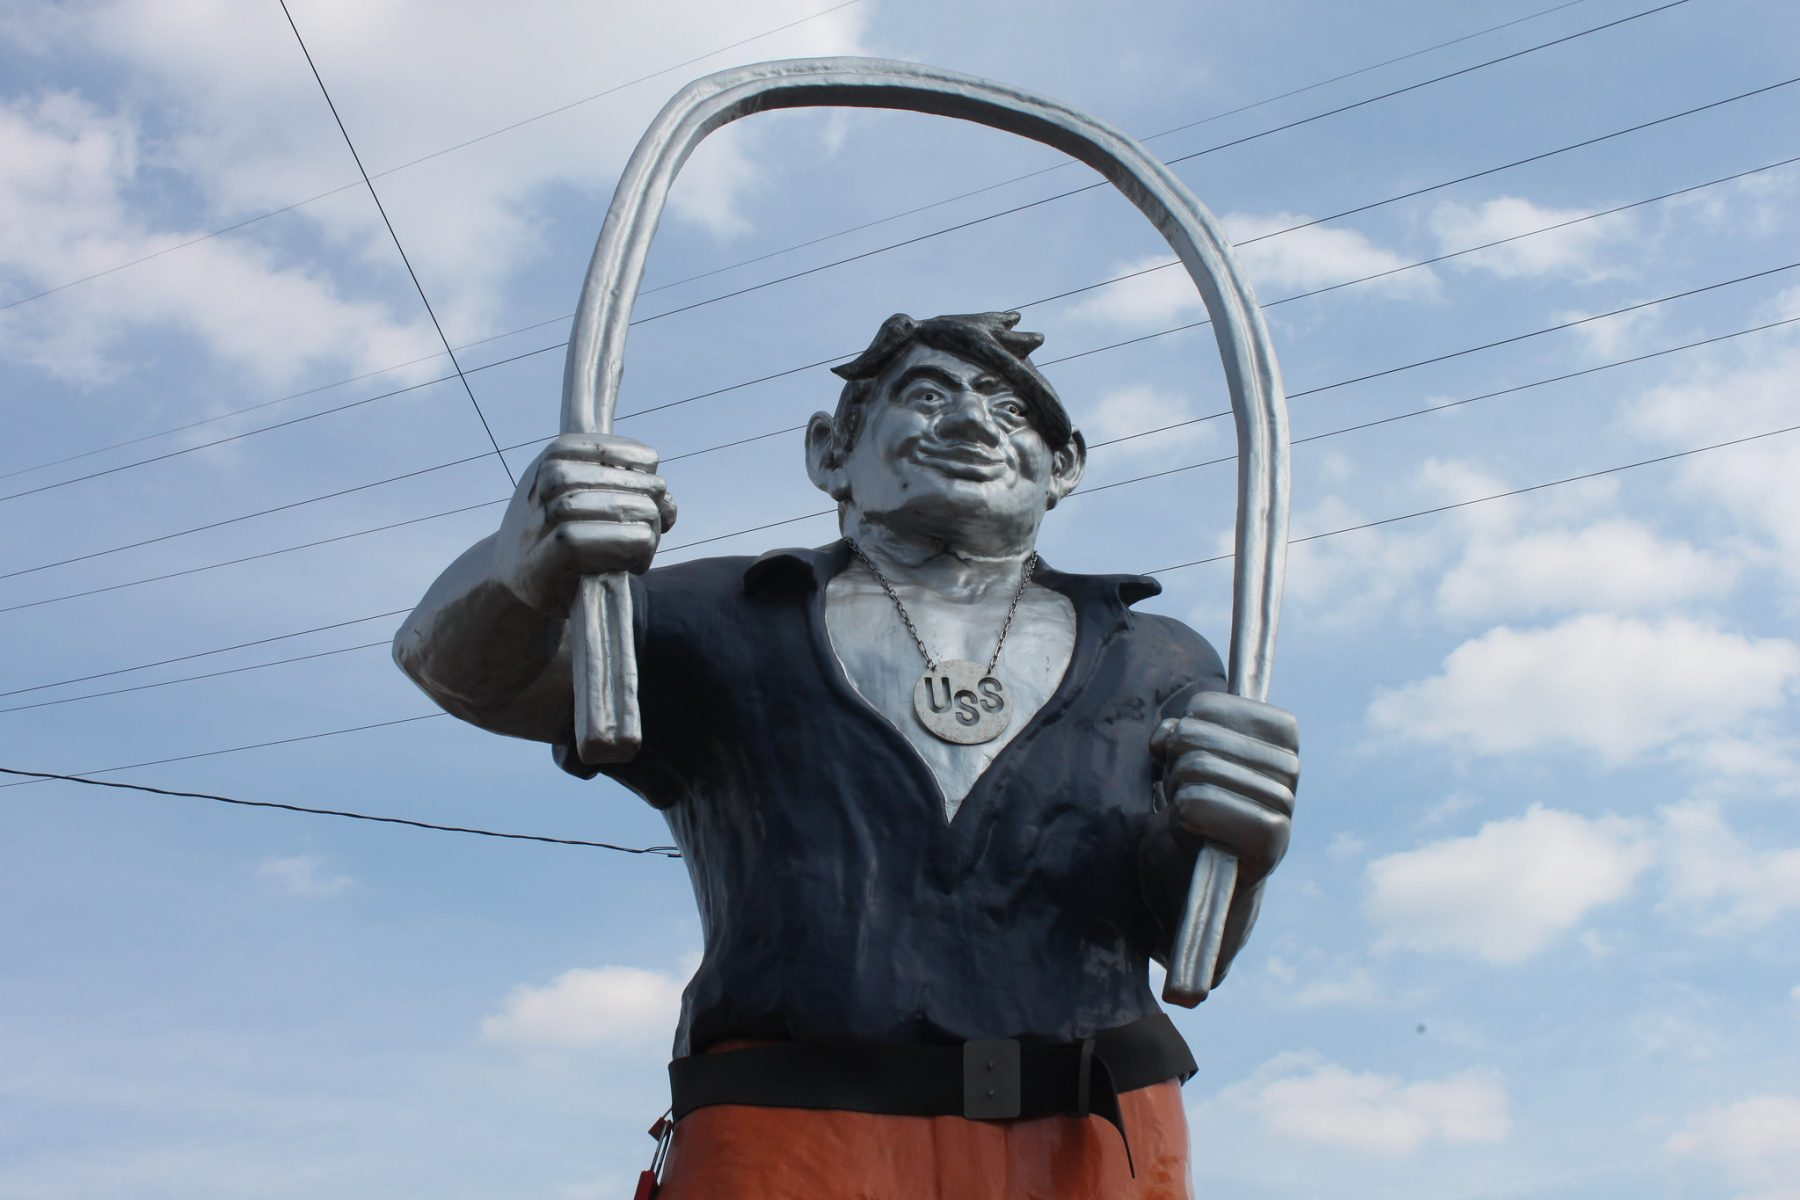 This statue in front of US Steel's Edgar Thomson Works in Braddock, PA depicts Joe Magarac, a mythical steelworker deriving from local legend.